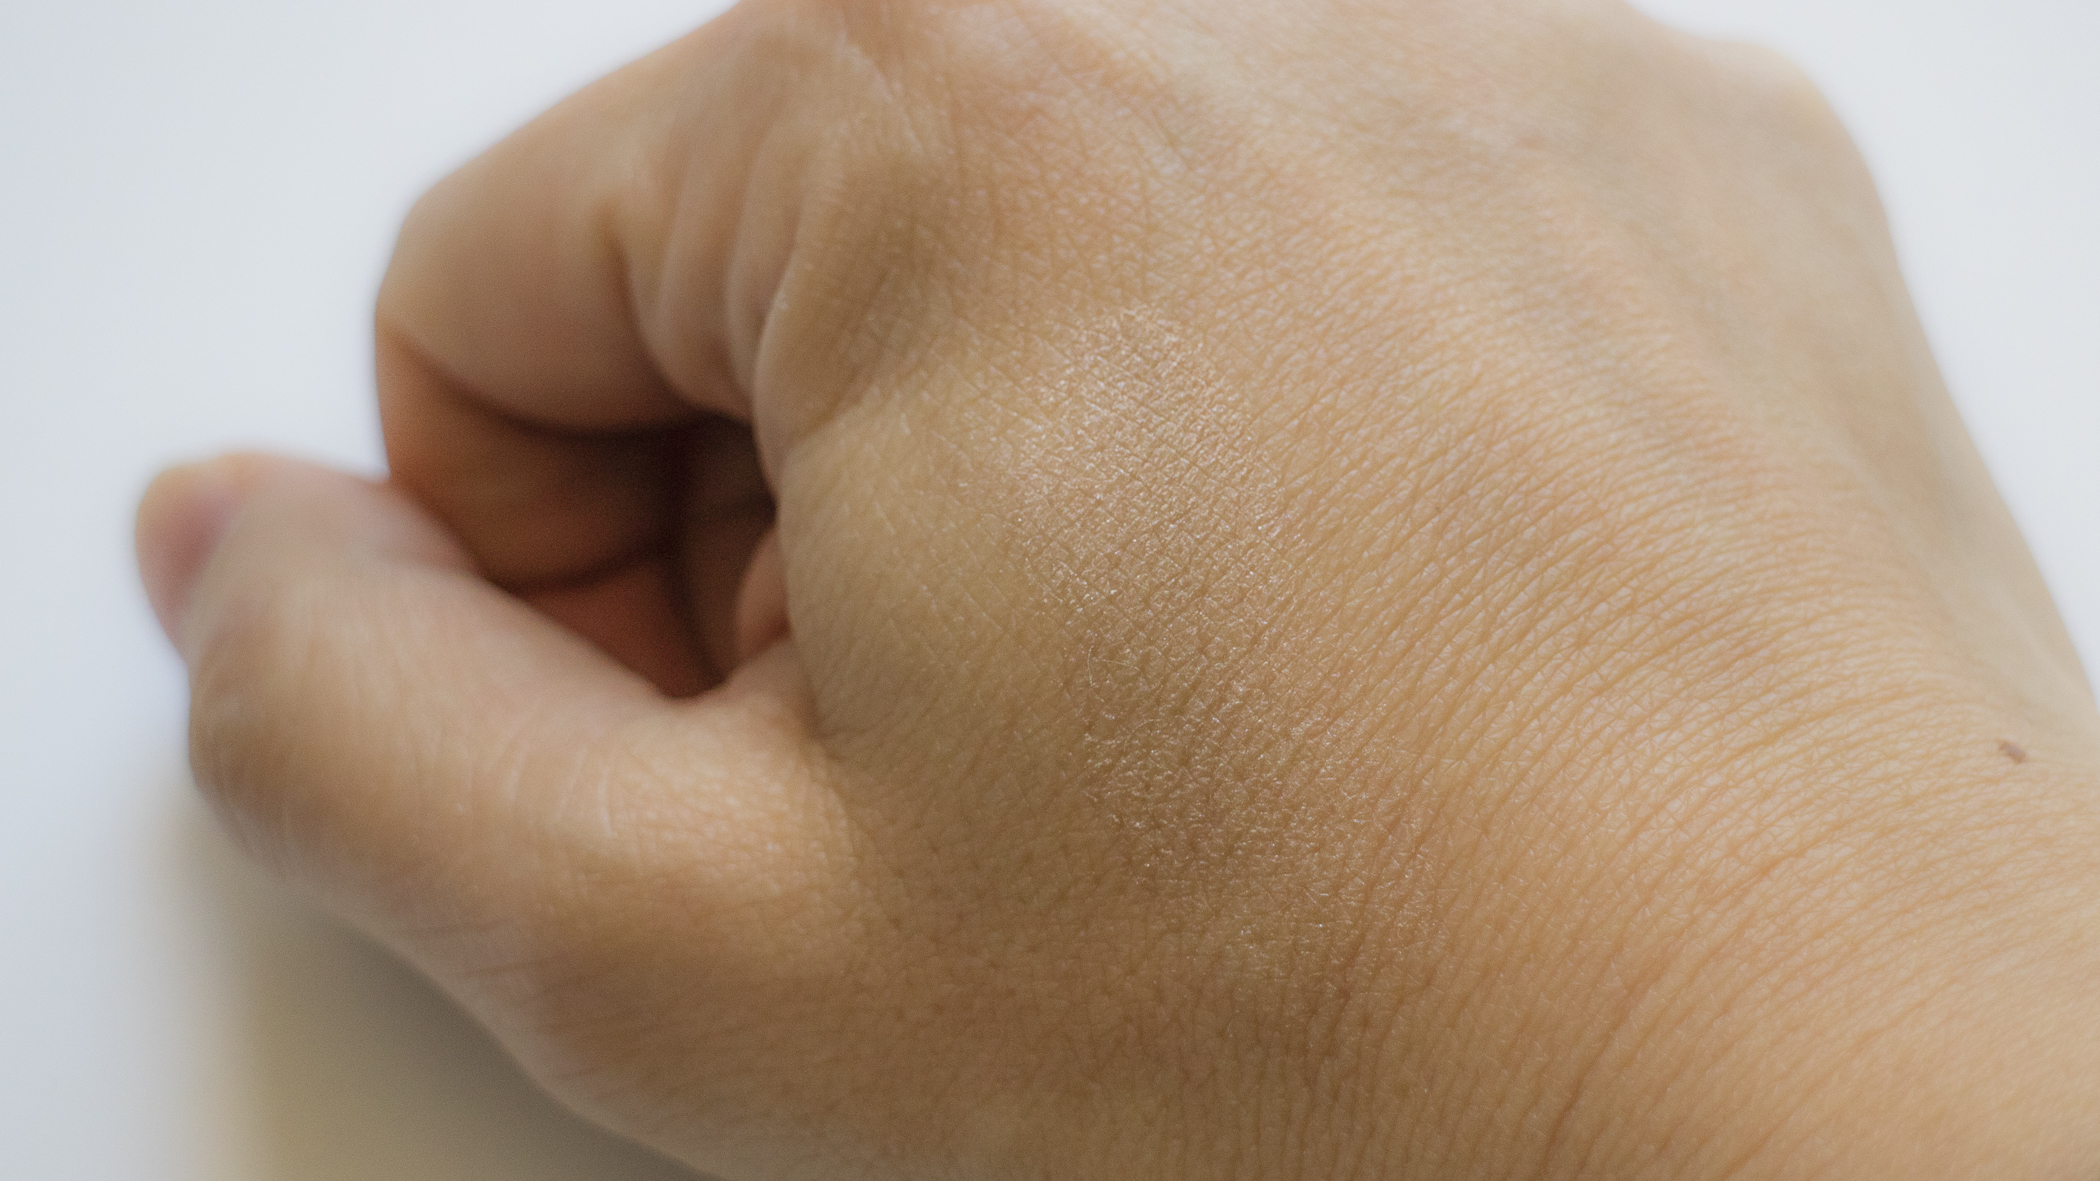 Cle de Peau's Luminizing Face Enhancer in 16  finger swatched.